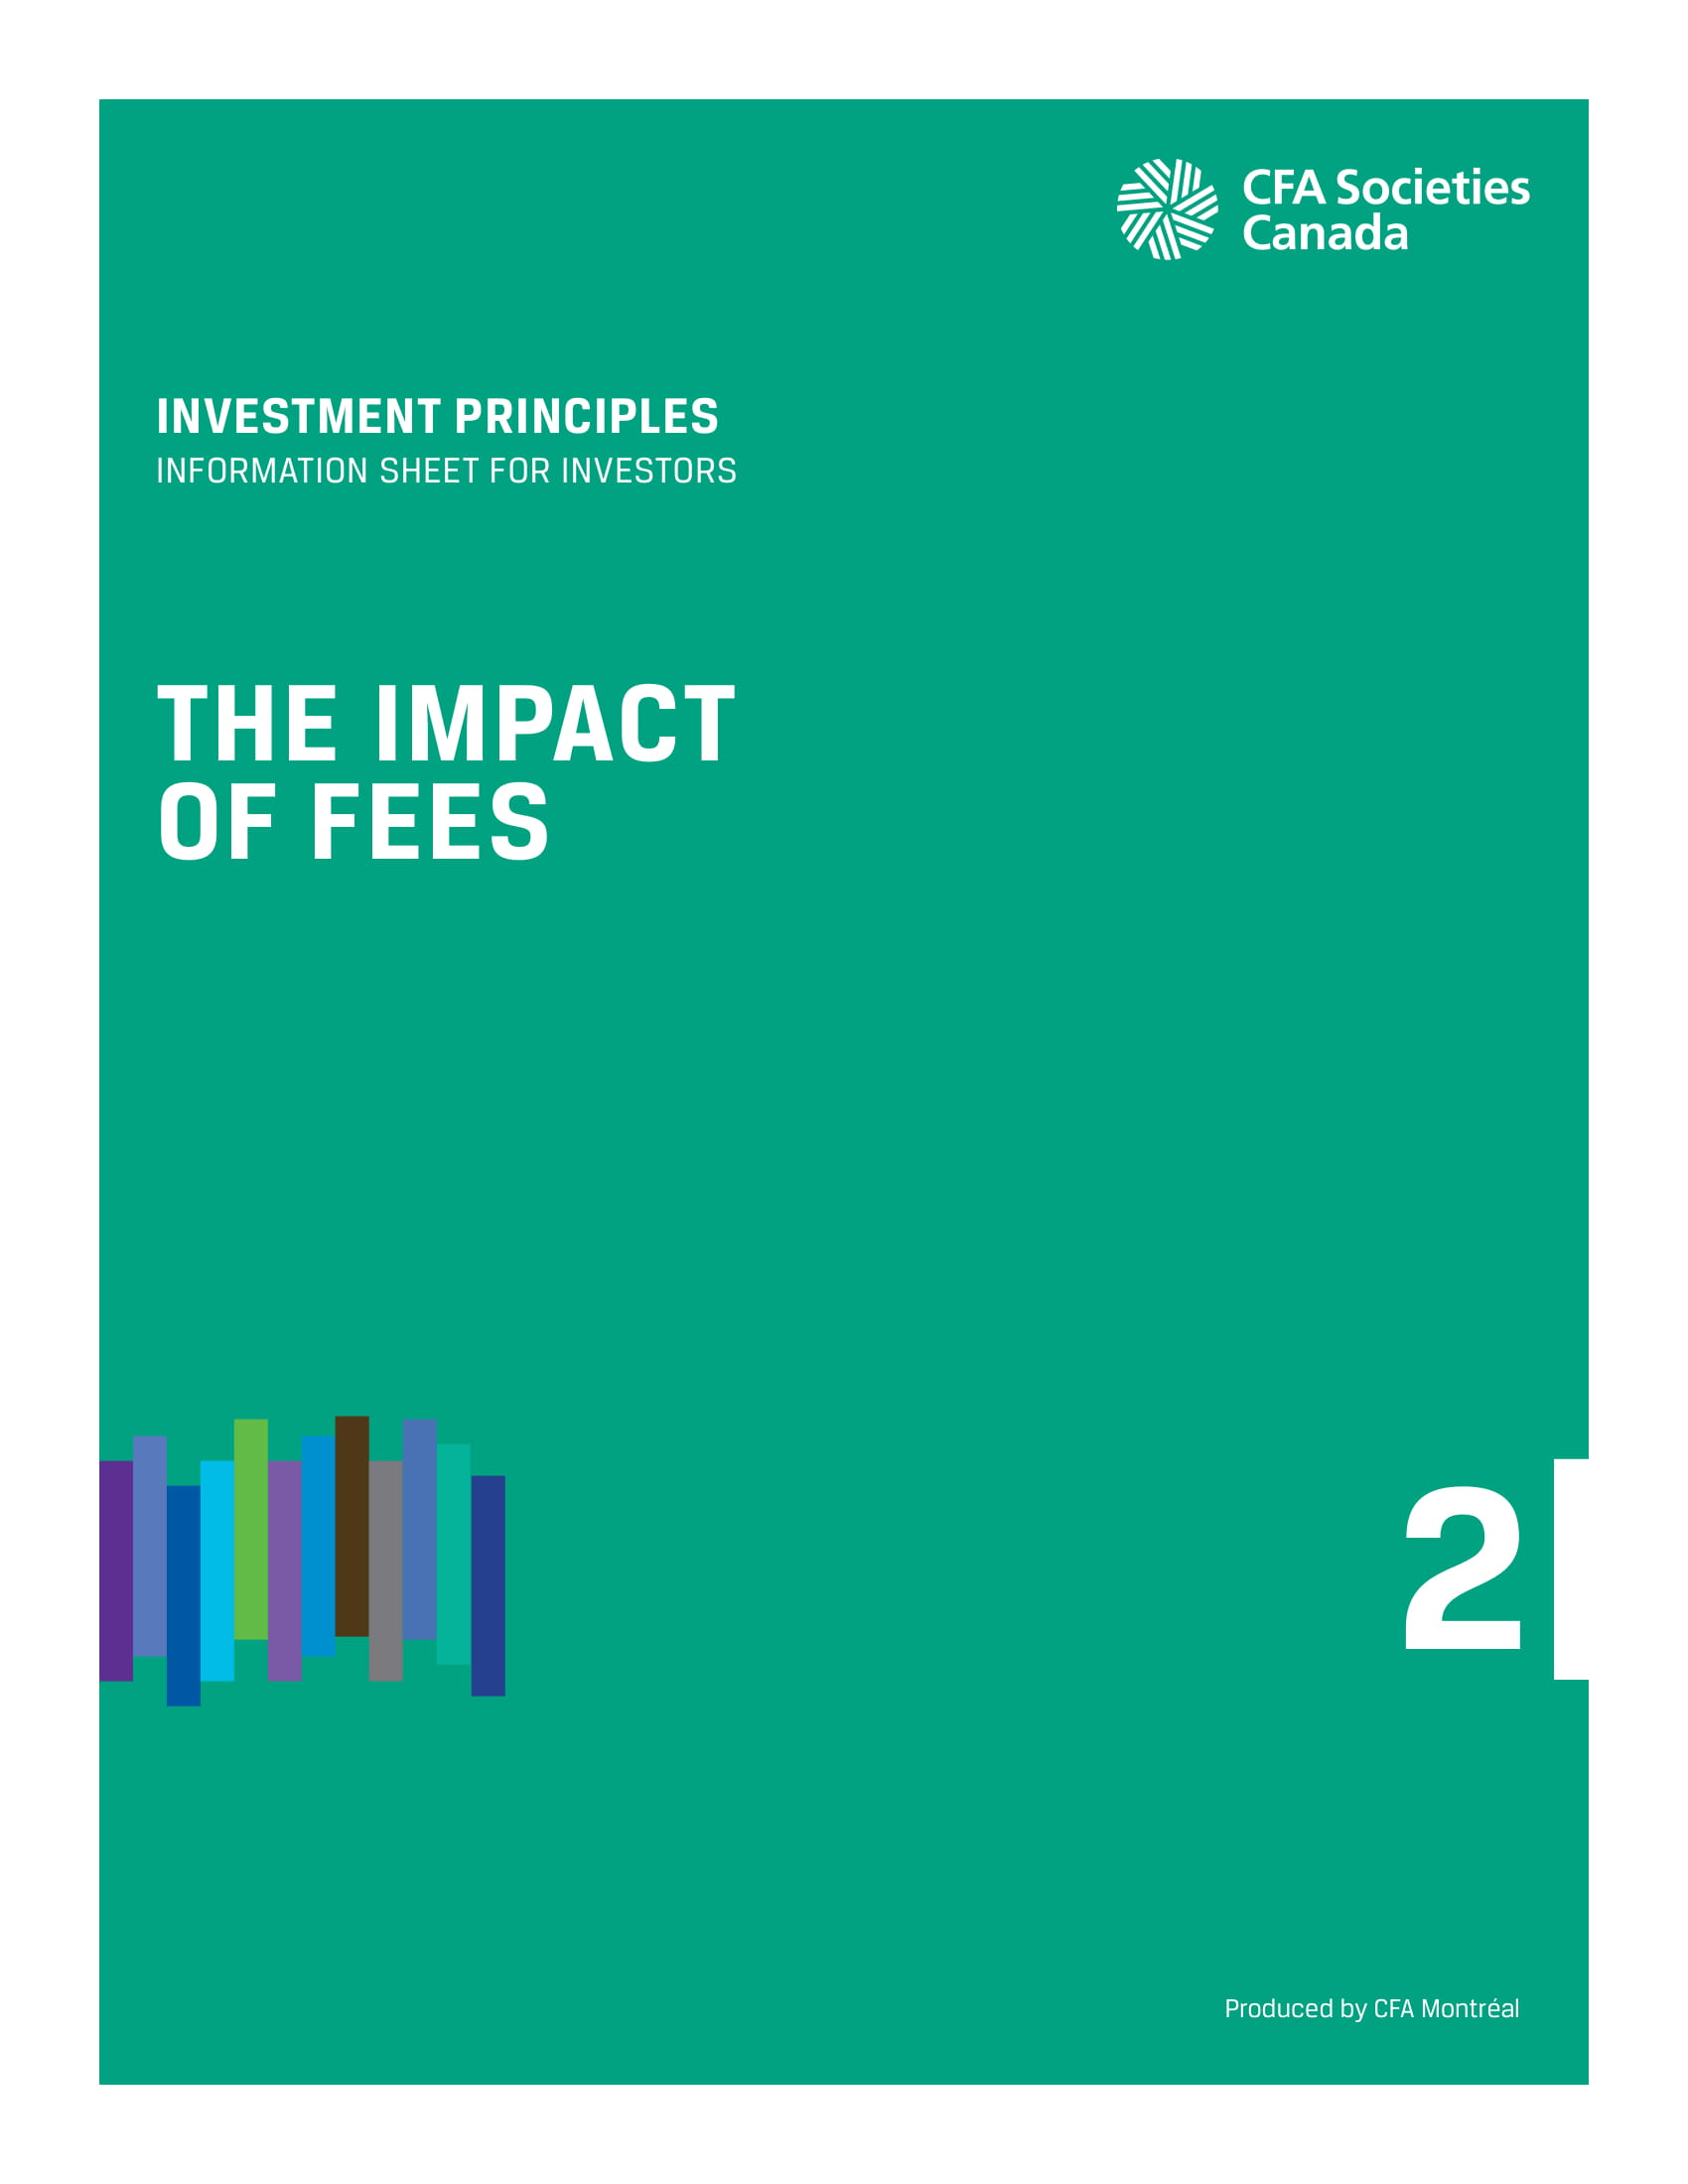 2. Investors - The Impact of Fees_p1-1-1.jpg